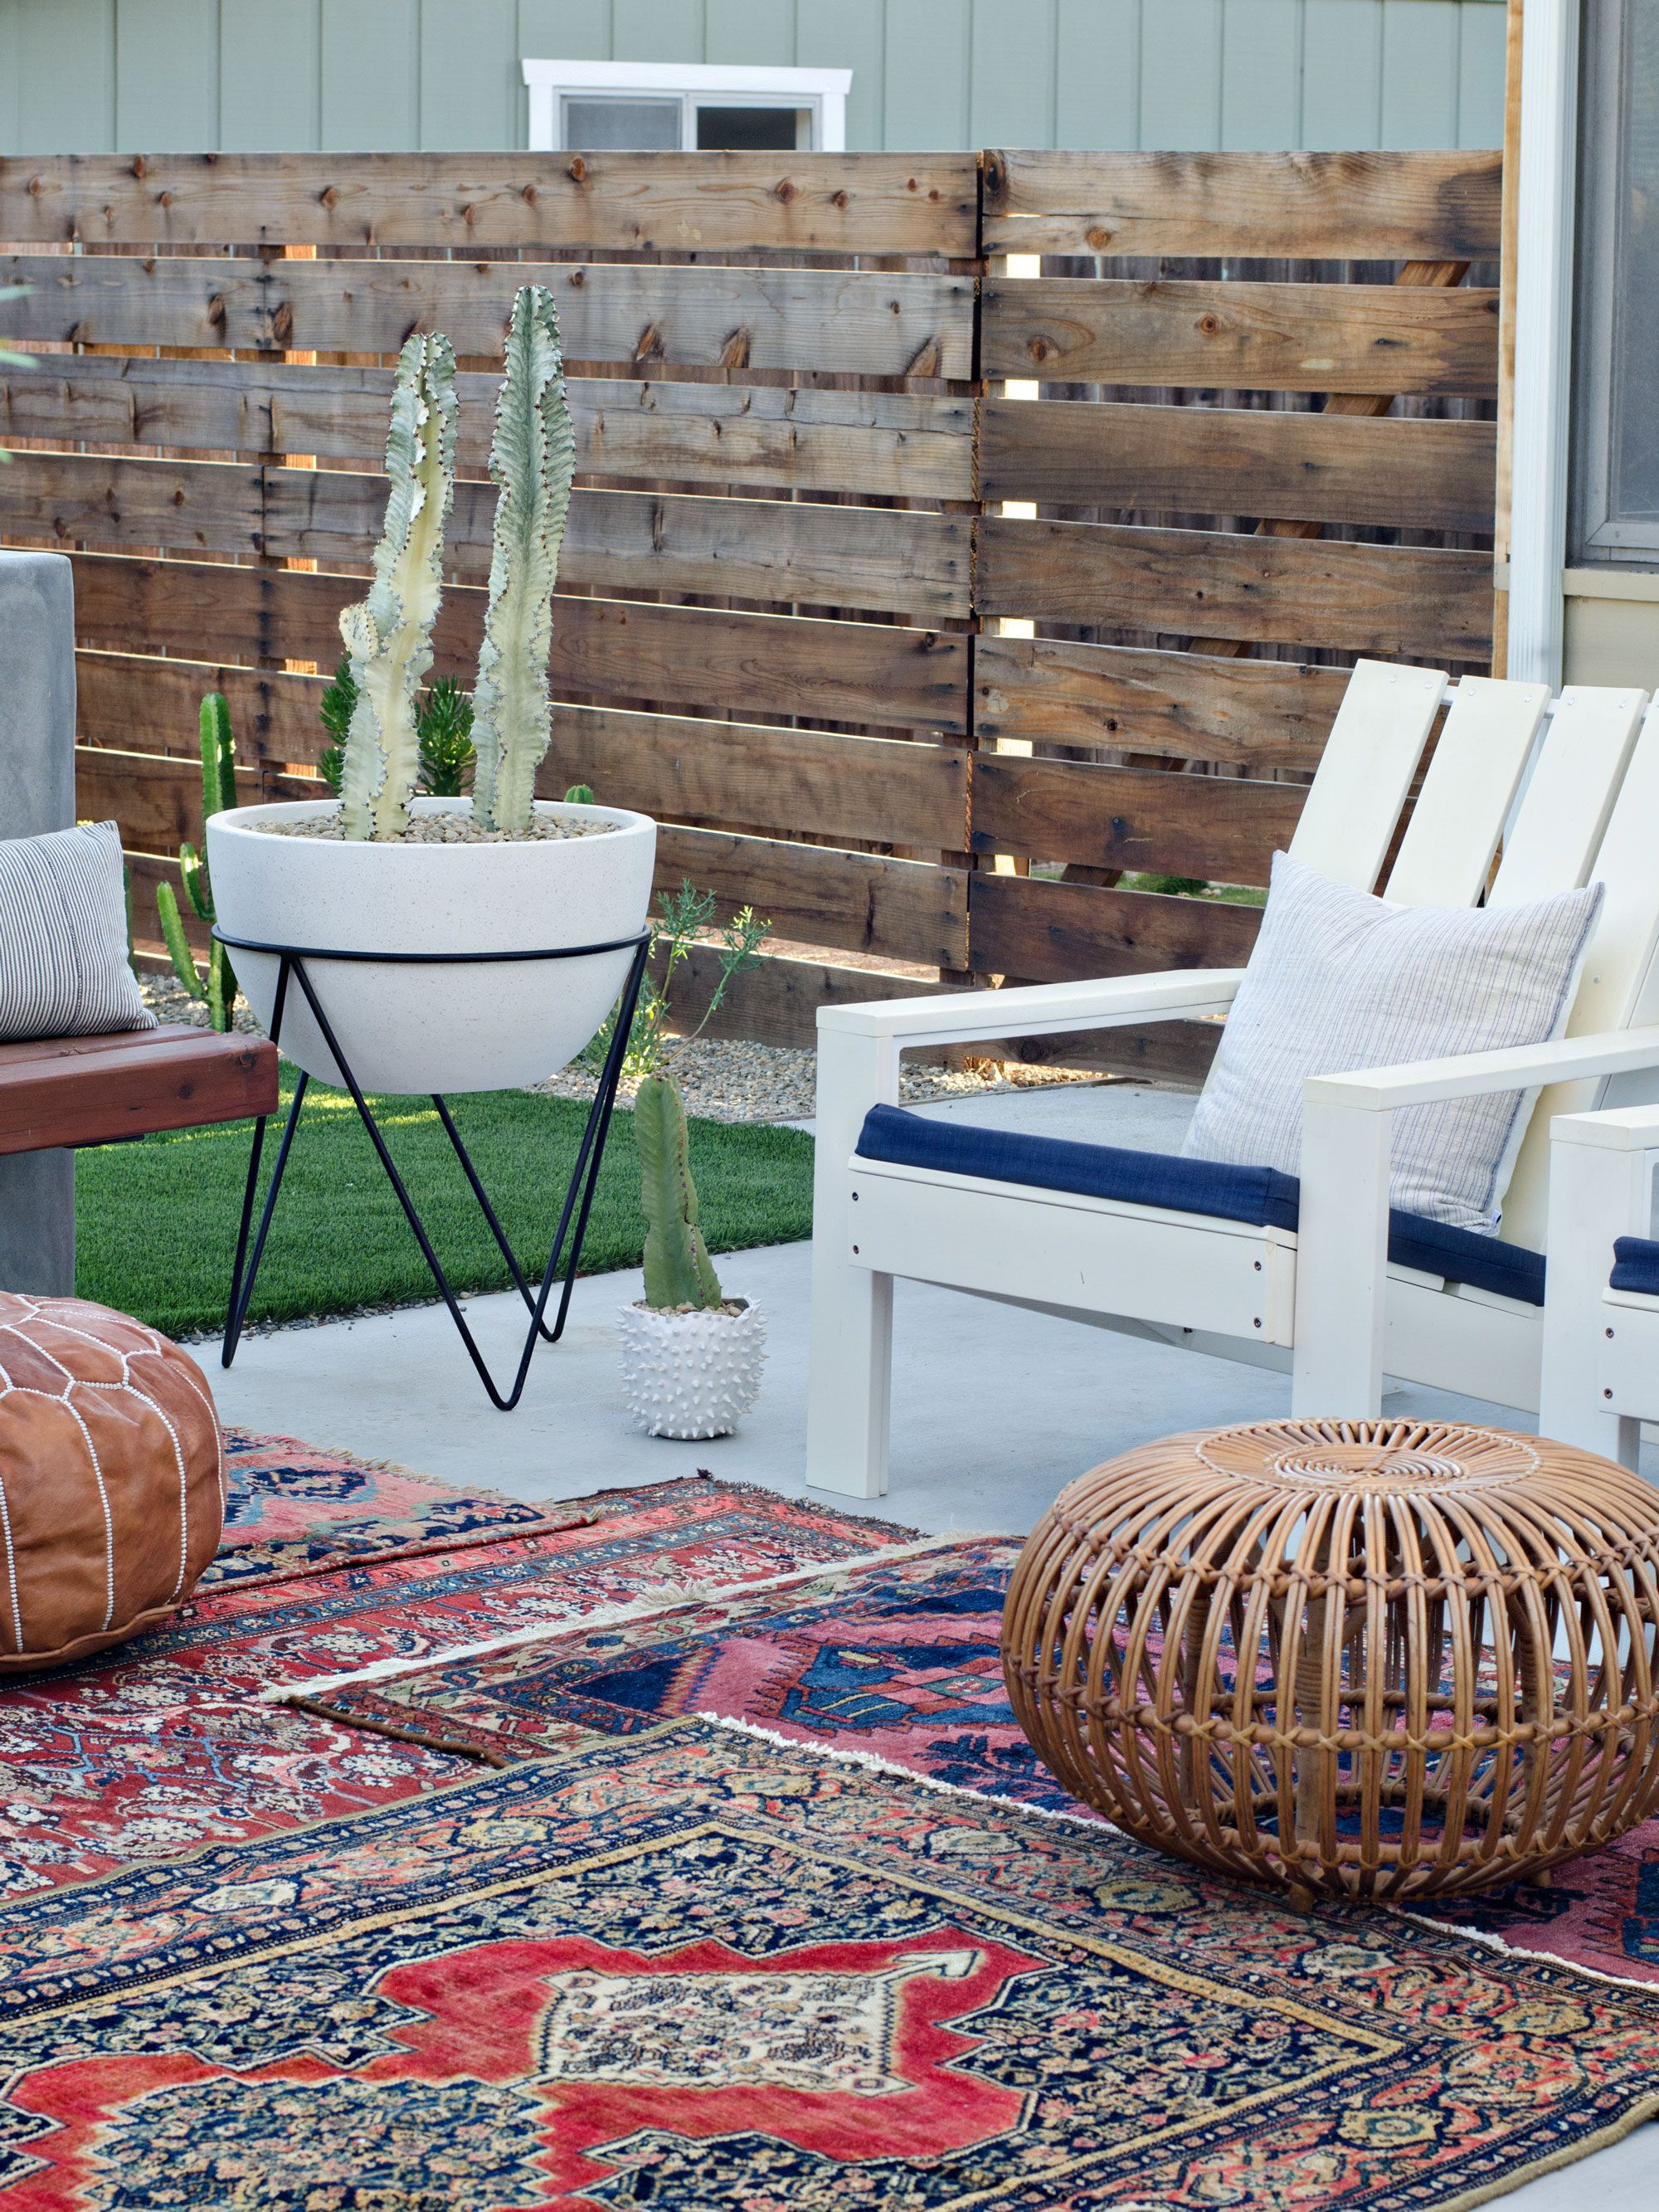 Superbe Modern California Backyard Reveal   The Vintage Rug Shop The Vintage Rug  Shop